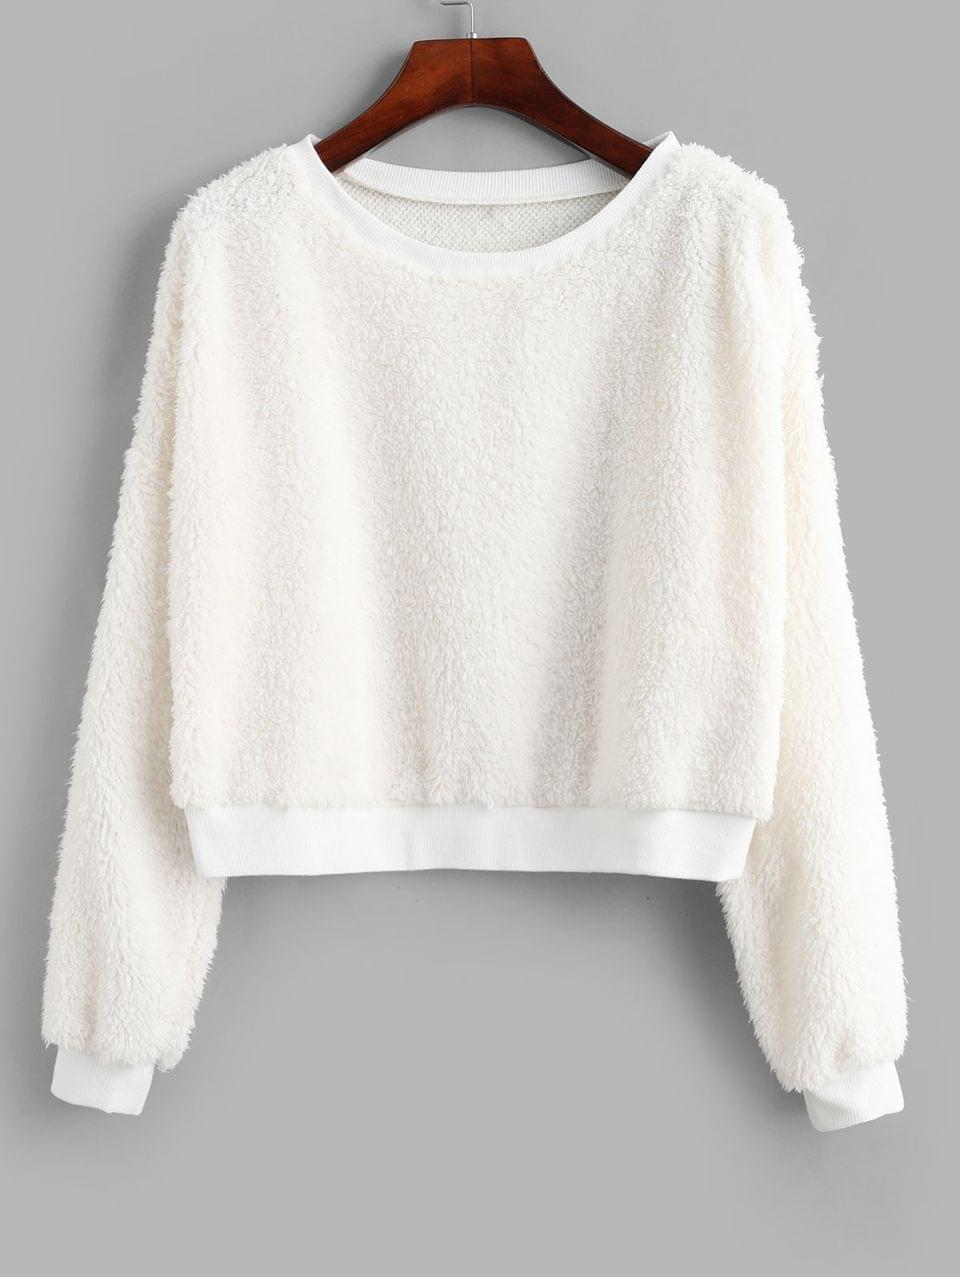 Women's Drop Shoulder Crop Teddy Sweatshirt - White S